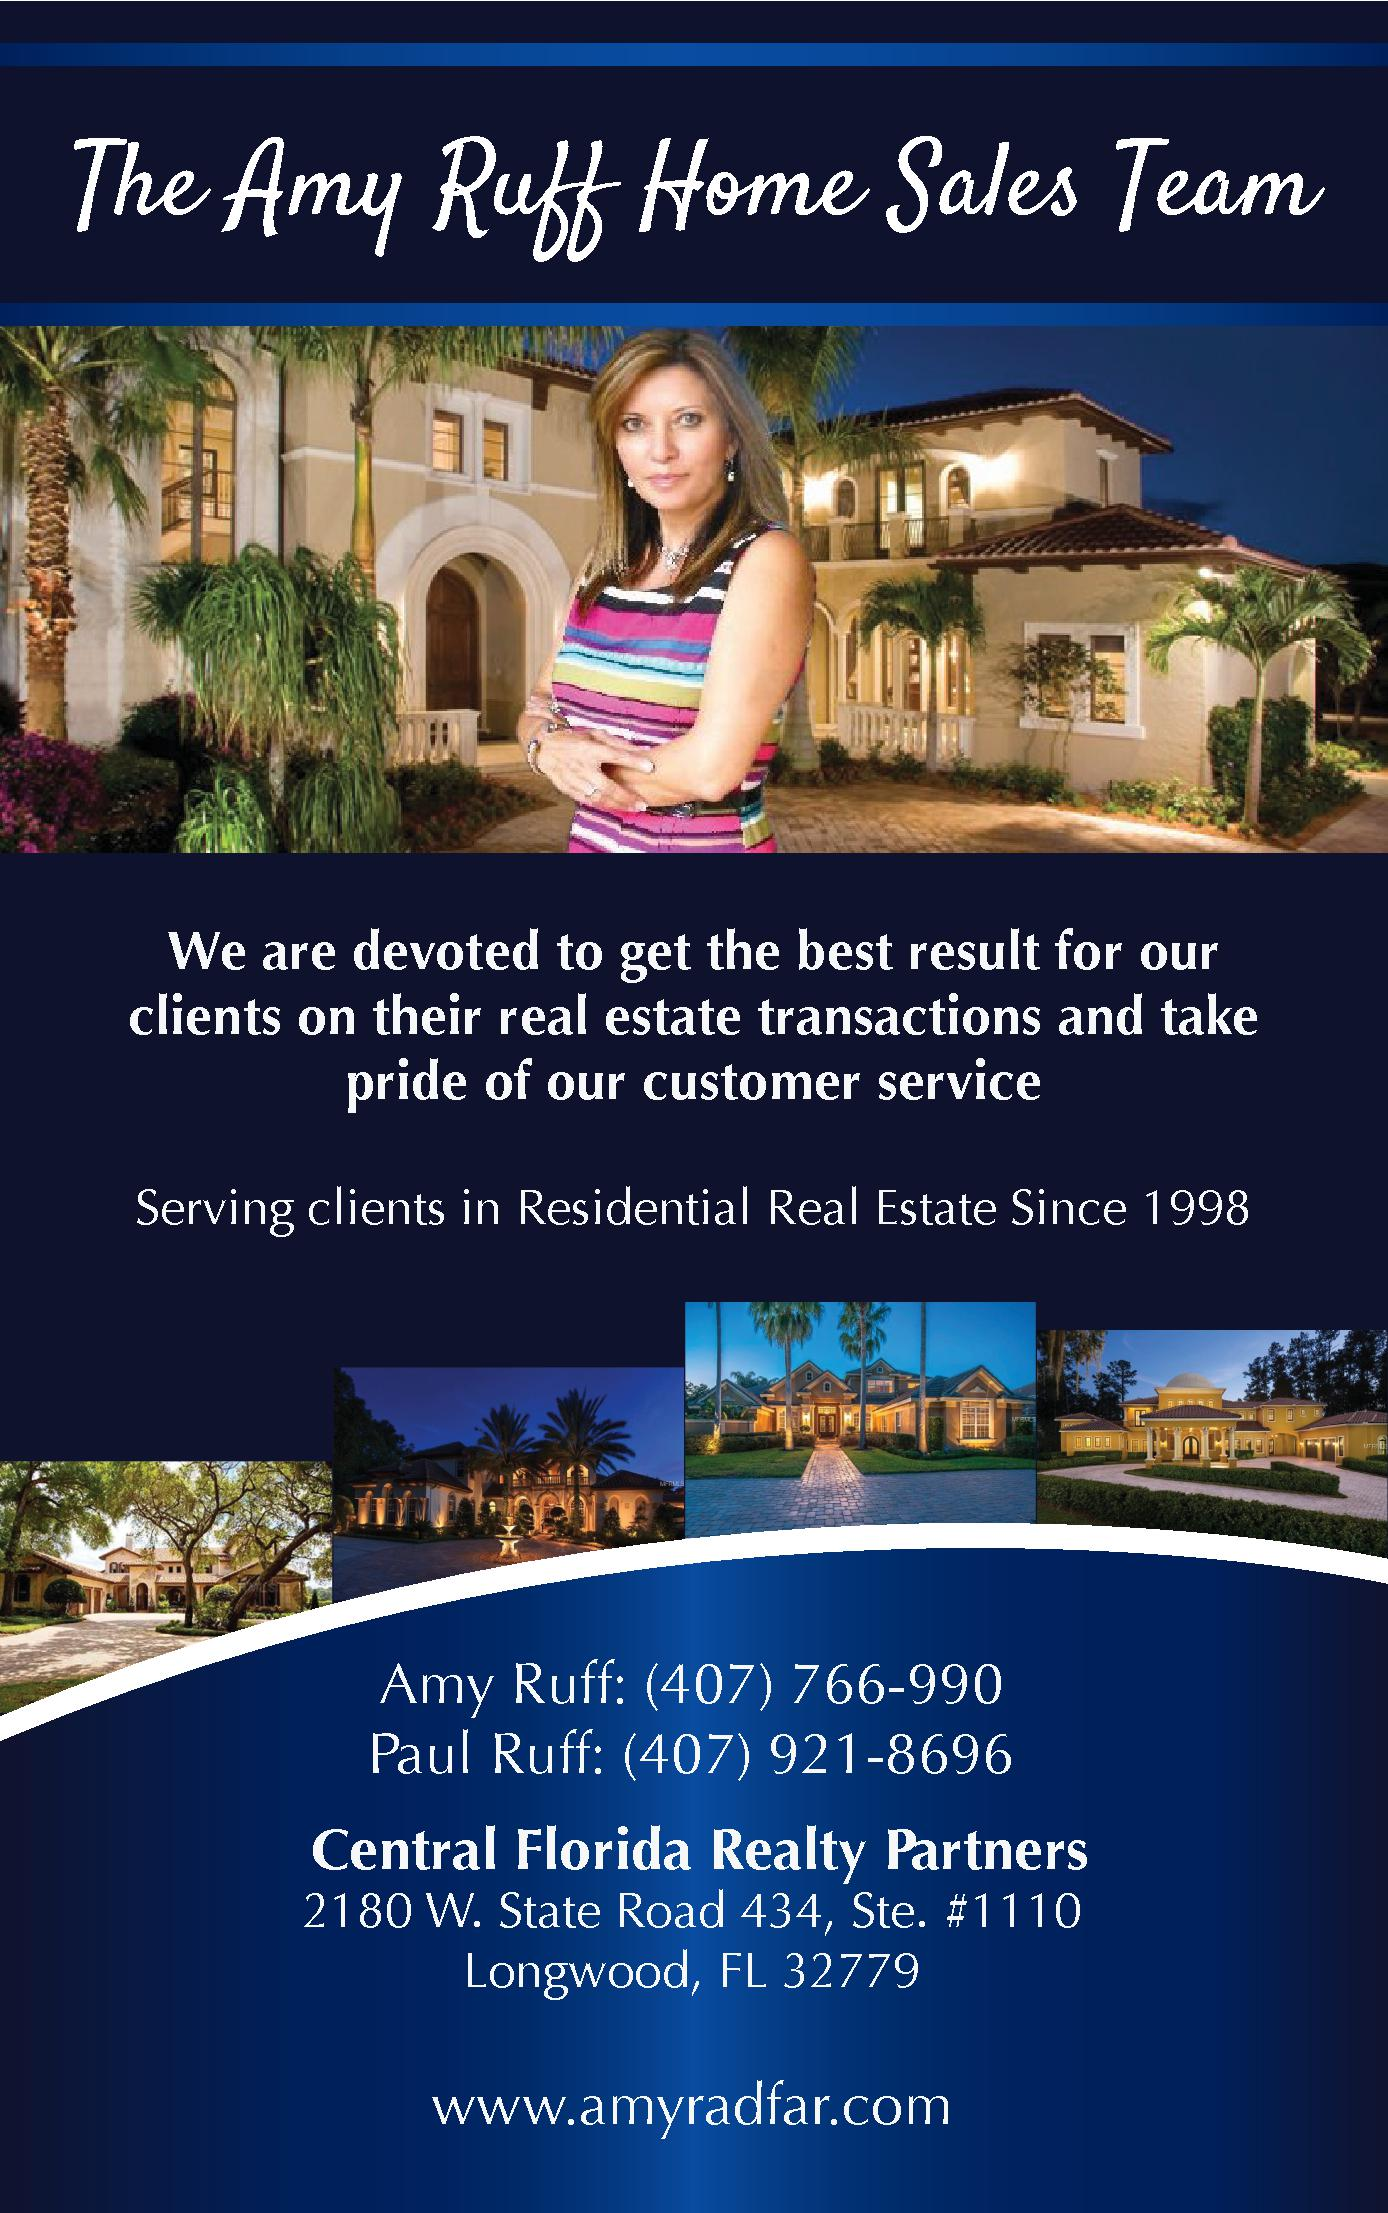 The Amy Ruff Team - Central Florida Reatly Partner